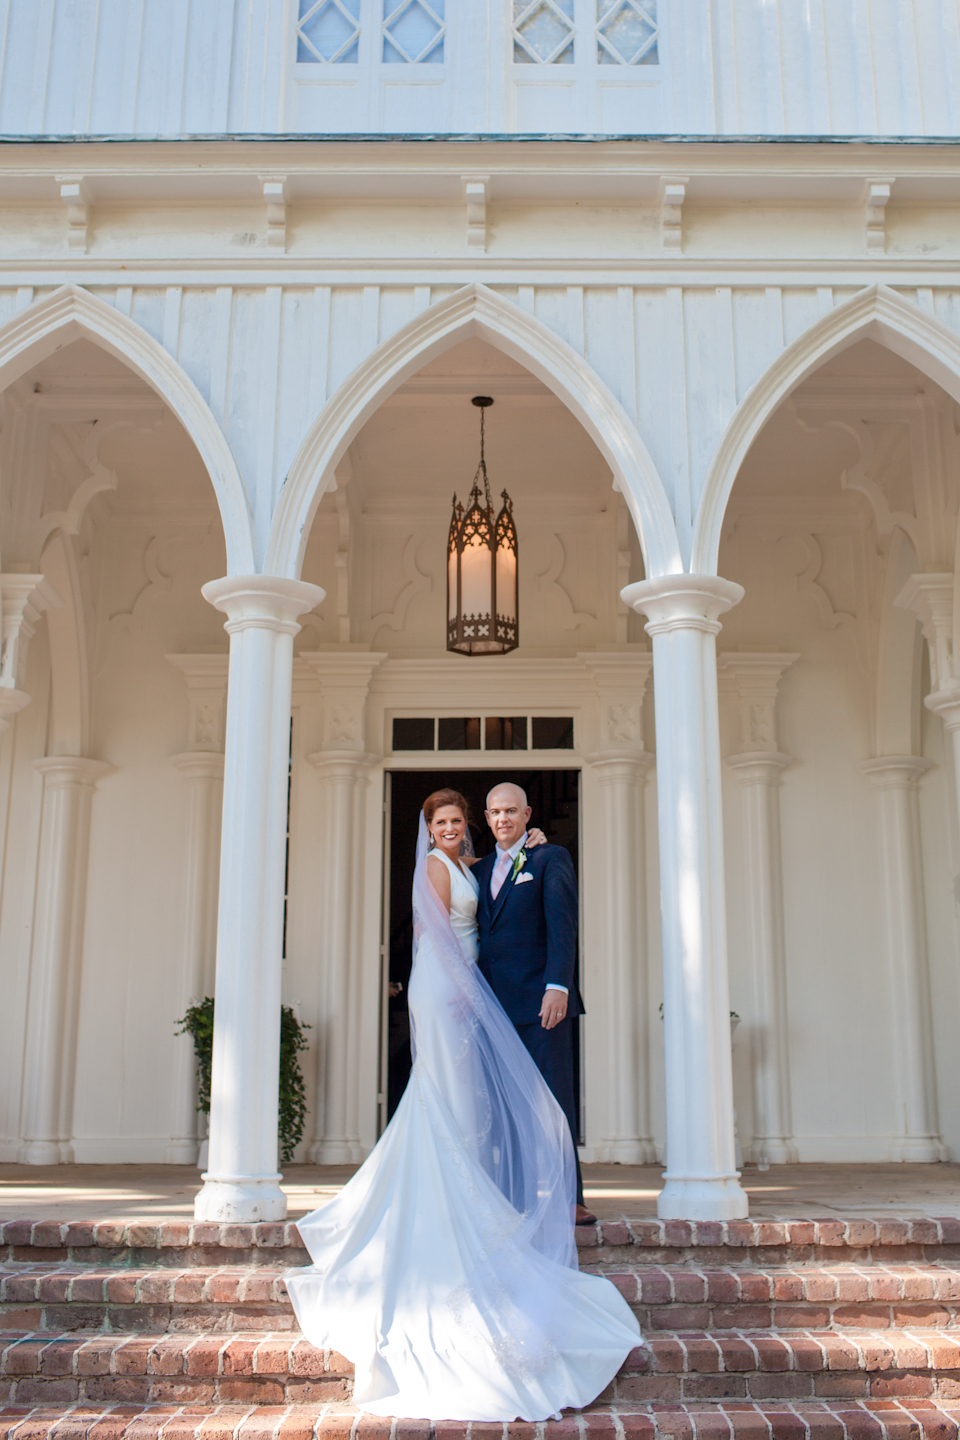 savannahweddingphotographerrosehillplantationweddingcharlestonweddingphotographer20.jpg